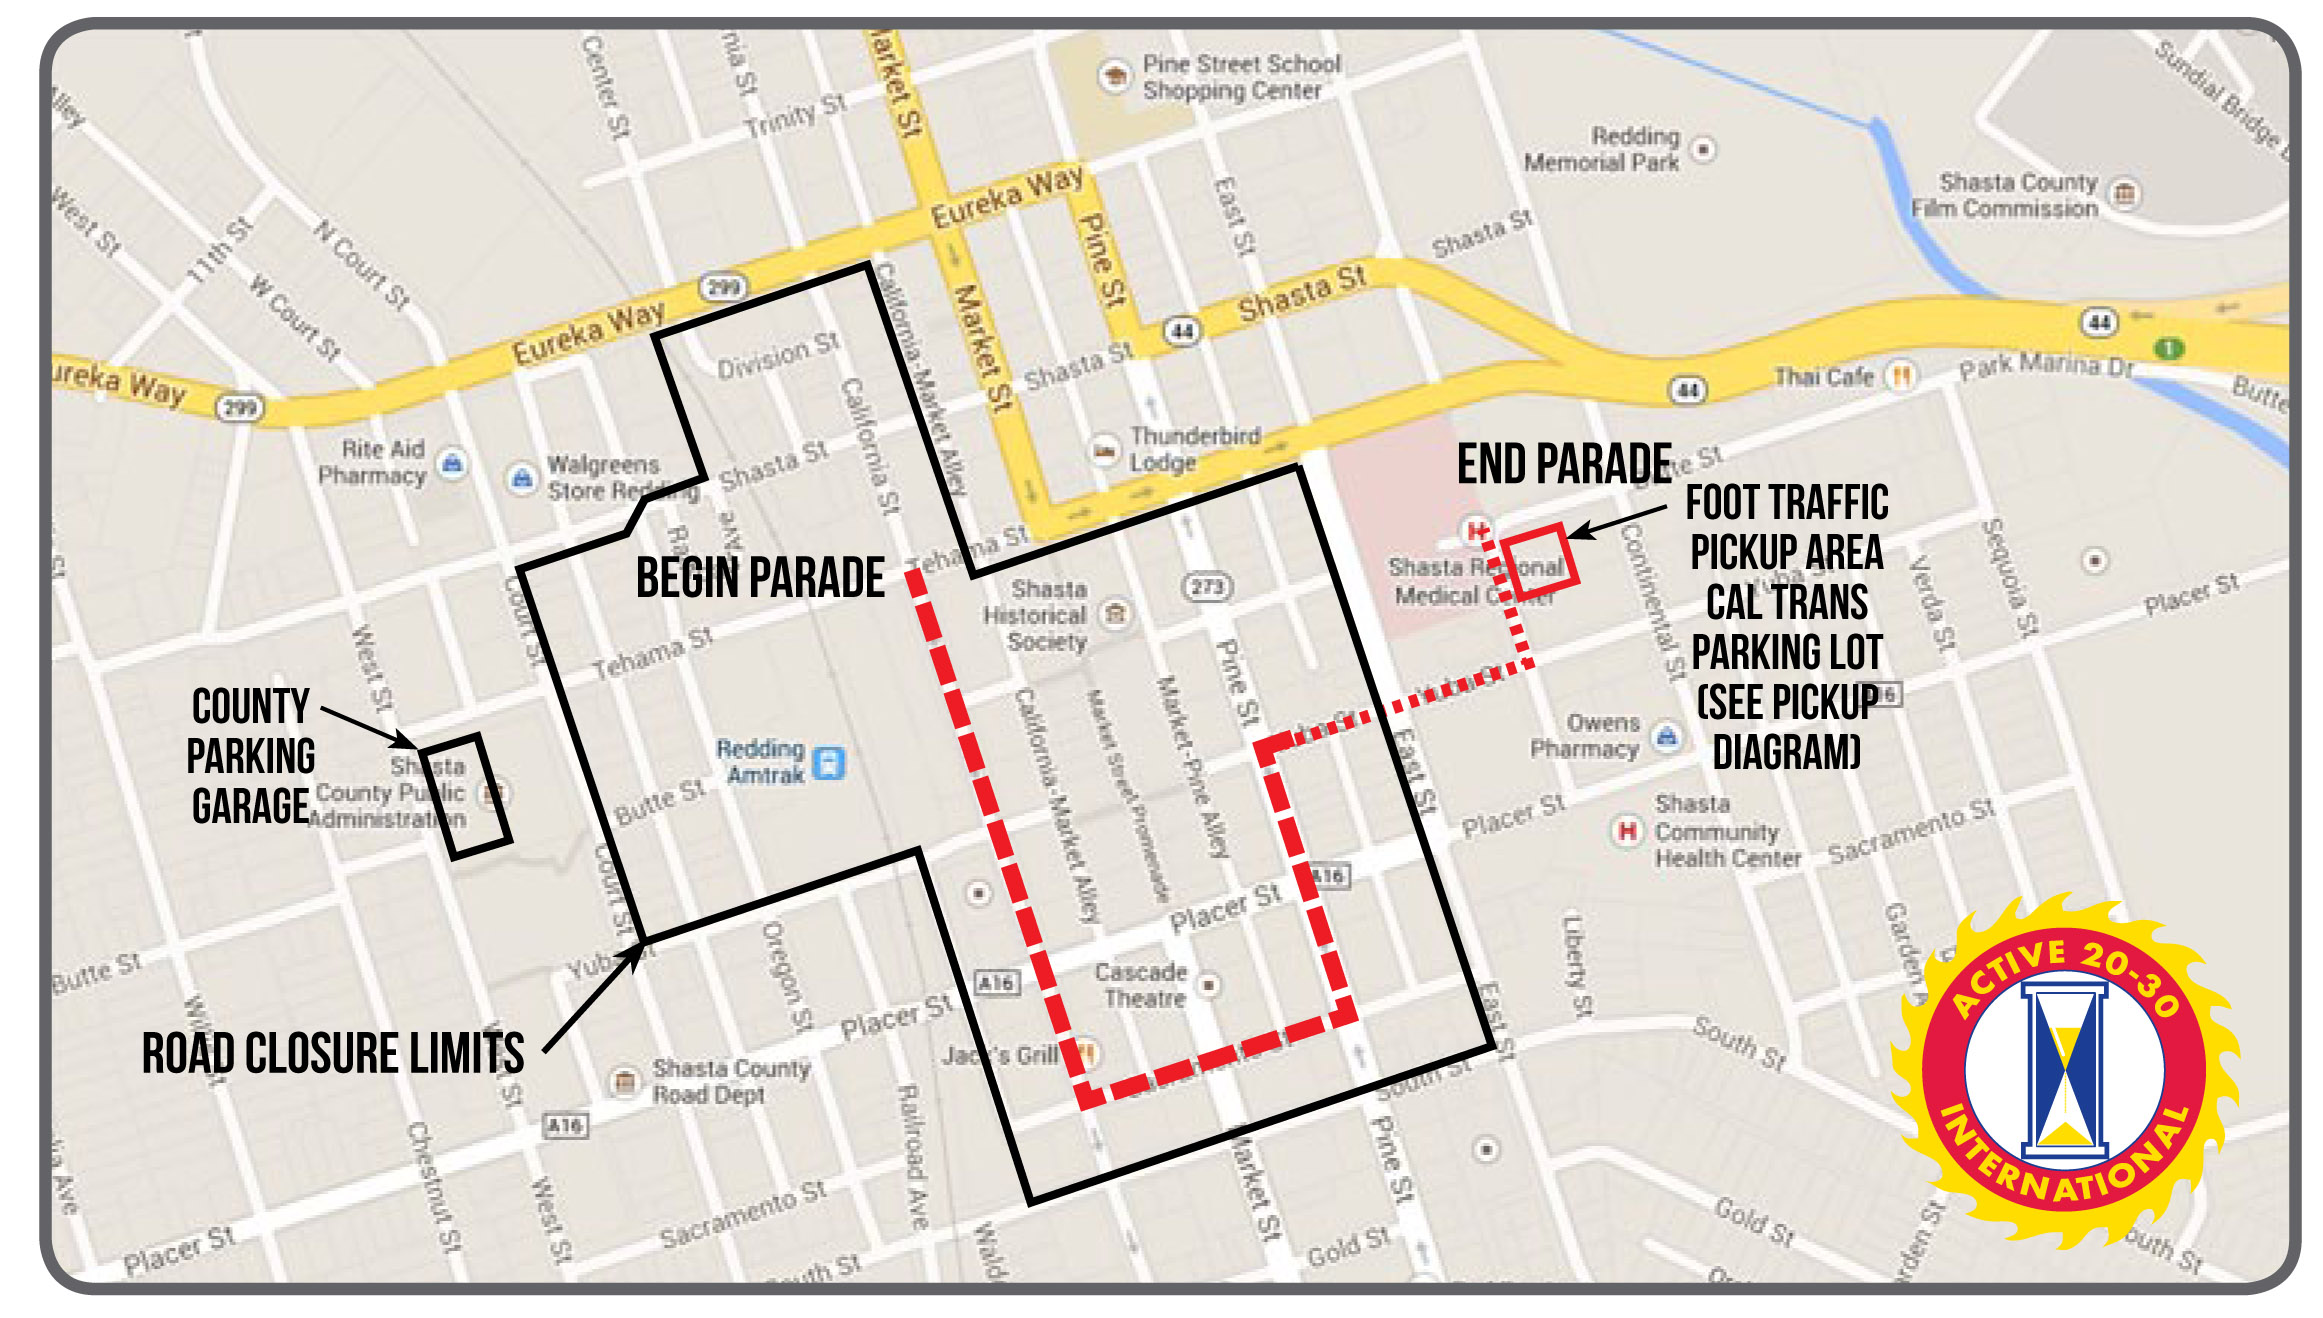 Redding Lighted Christmas Parade Route And Closures Anewscafe